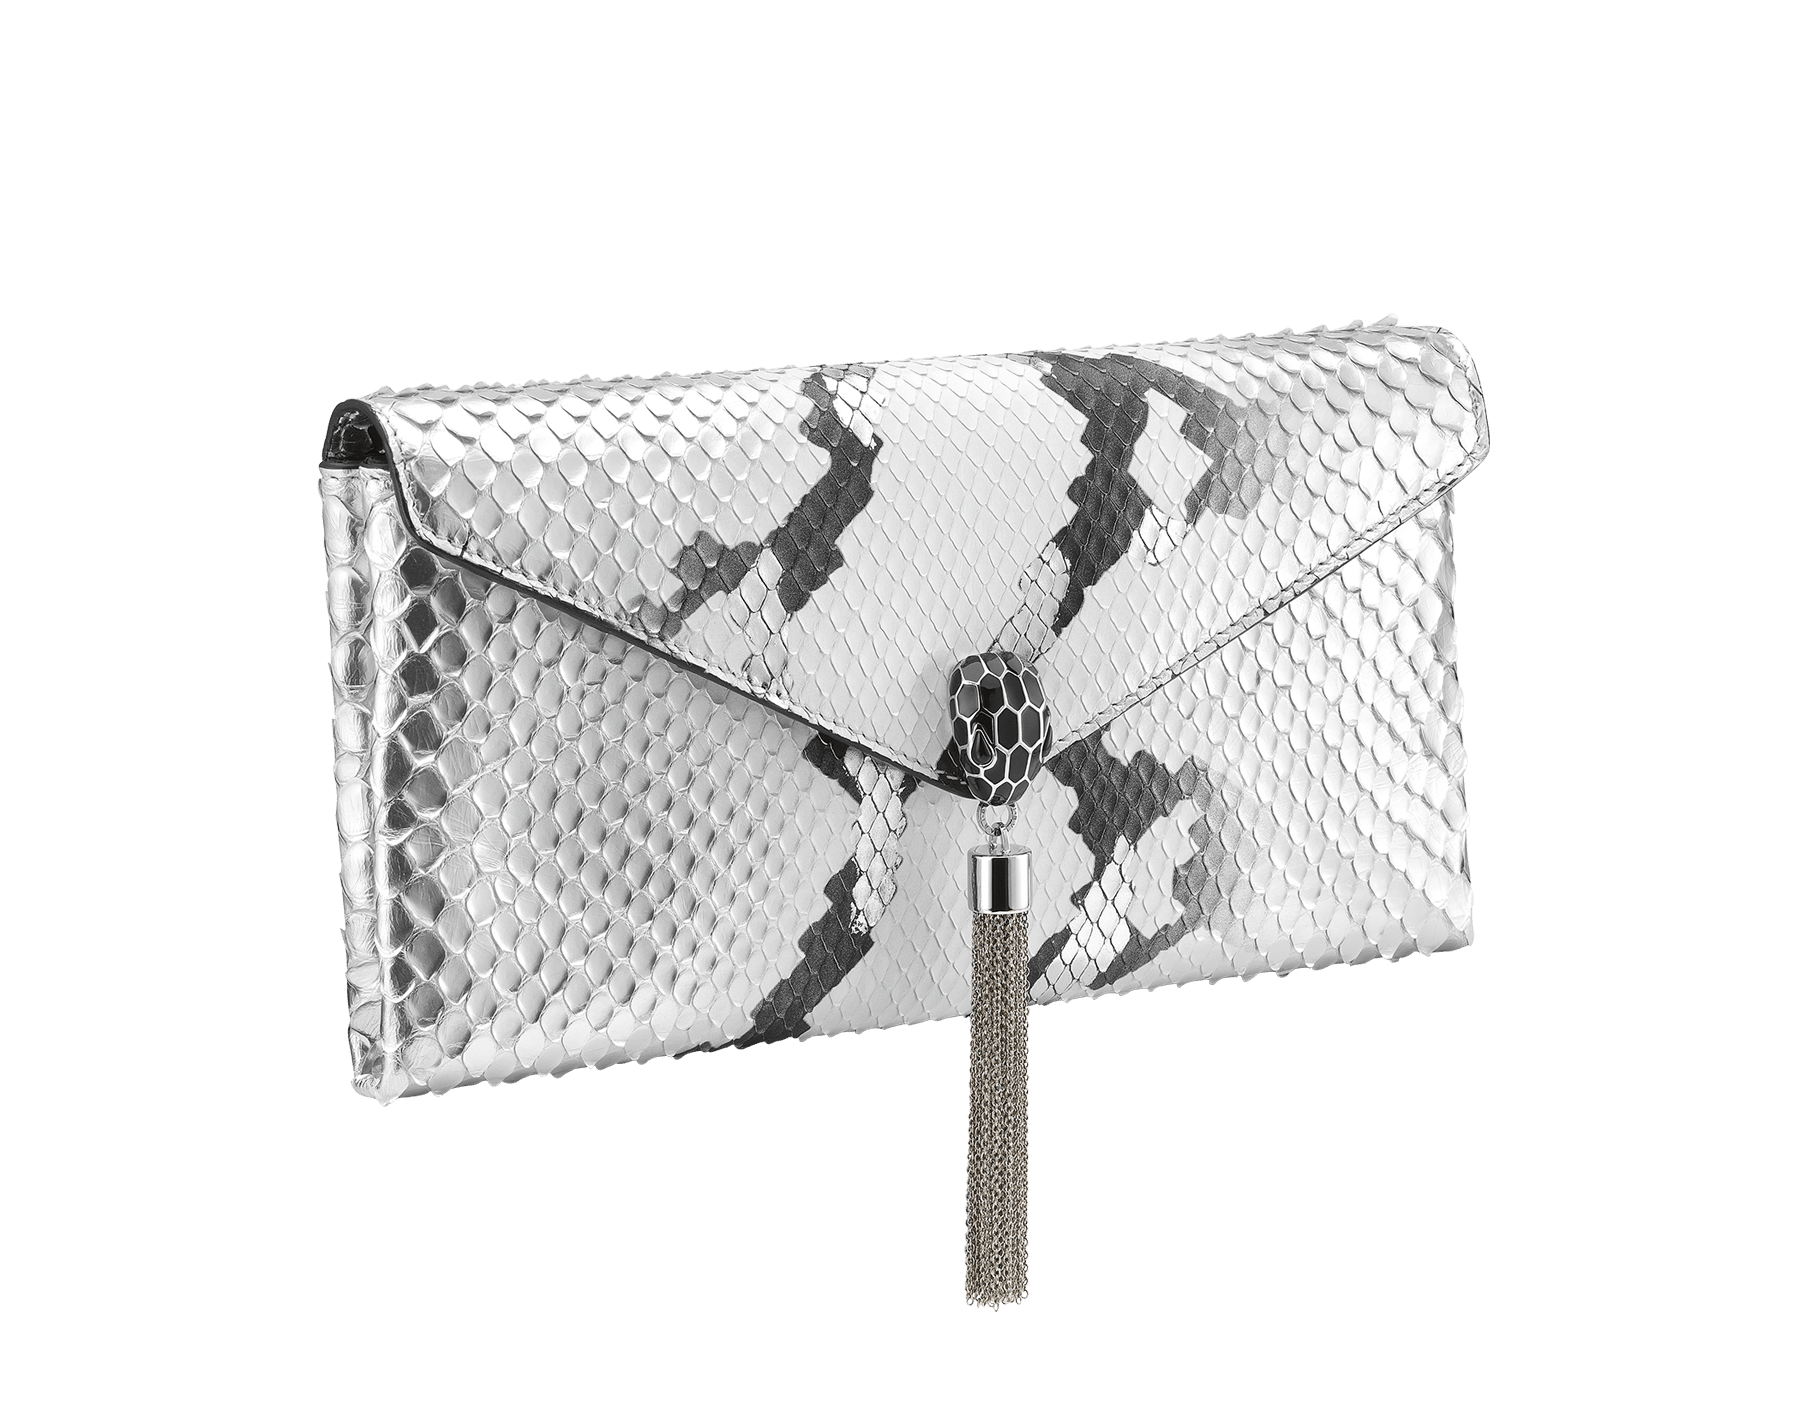 """Serpenti"" evening clutch bag in white and silver Ice Glam python skin. Iconic snake head stud closure with tassel in palladium plated brass enriched with black shiny enamel and black onyx eyes. 288976 image 2"